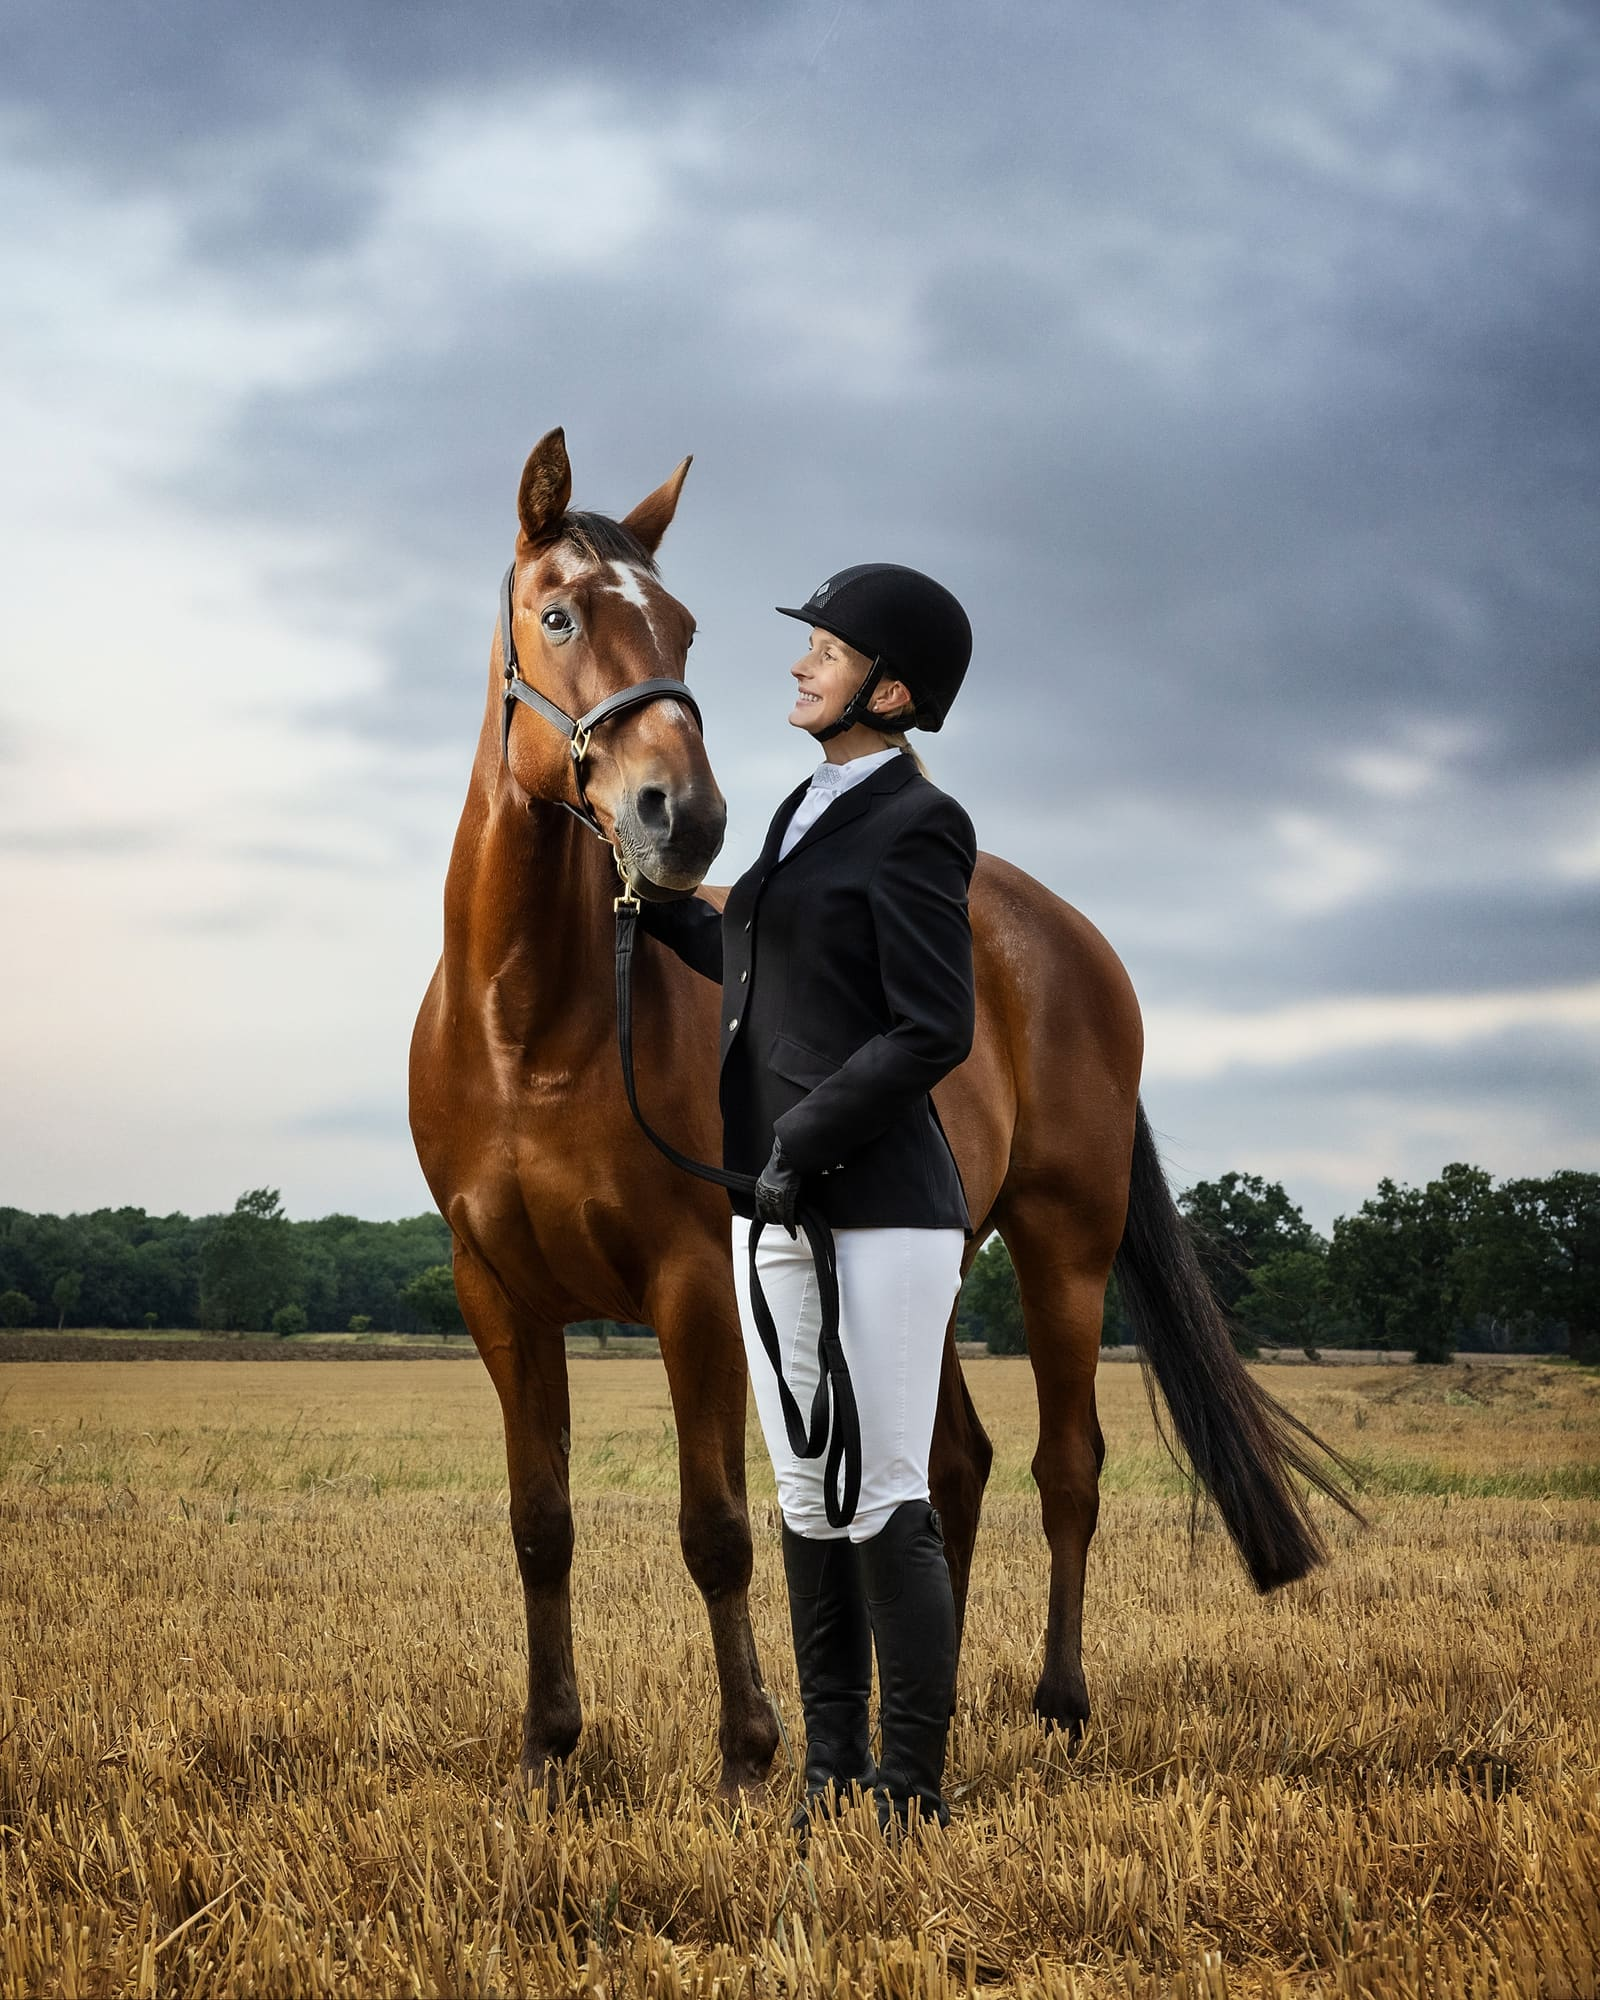 Portrait of a horse and jockey in a Suffolk field with a dramatic cloudy sky